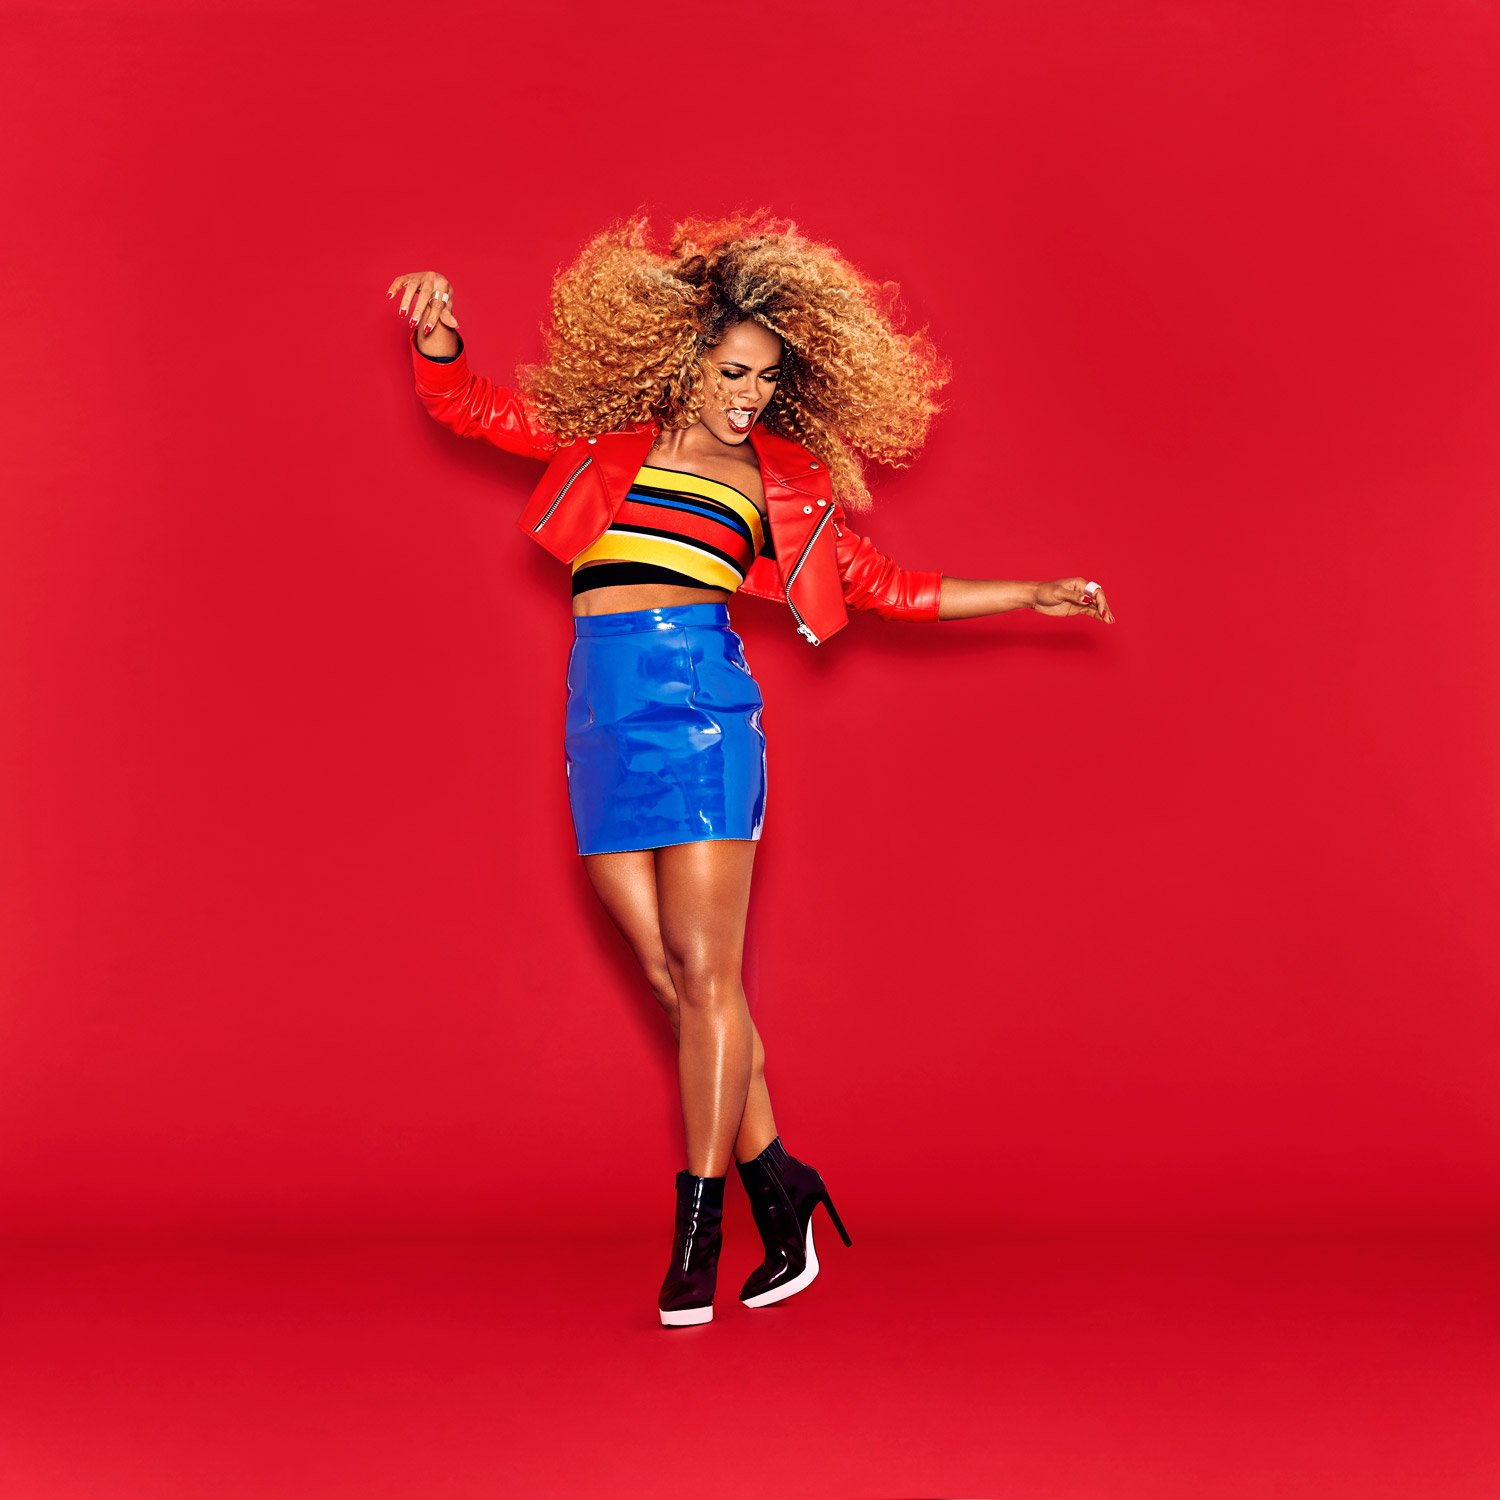 RT @FleurEast: I'll be chatting to @RochelleHumes and @MelvinOdoom on #TheXtraFactor at 7pm on @ITV2! Be sure to tune in! https://t.co/KSqQ…